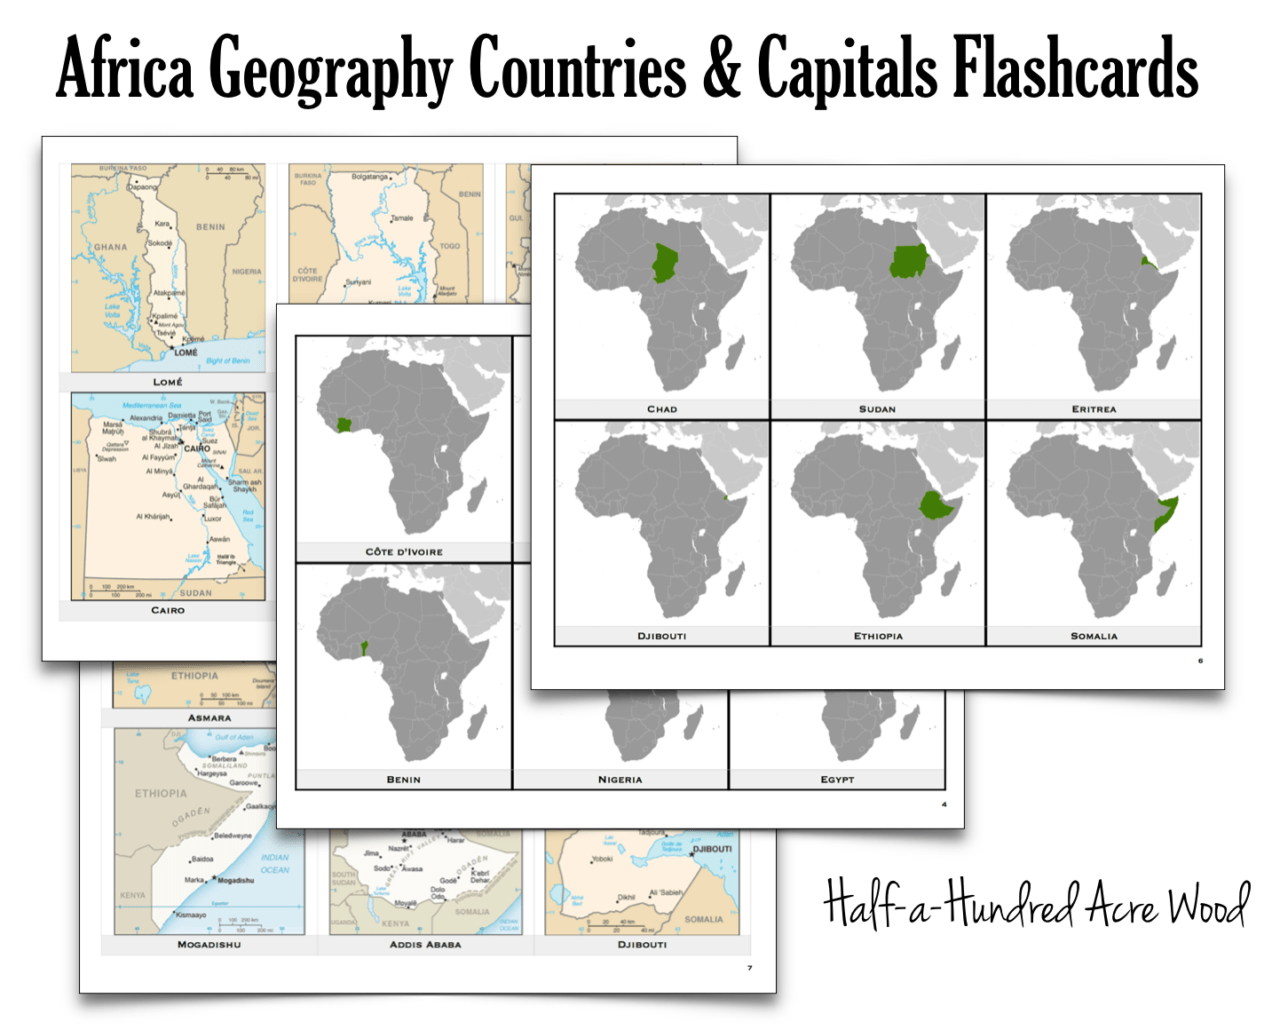 Africa Countries Capitals Flashcards Half A Hundred Acre